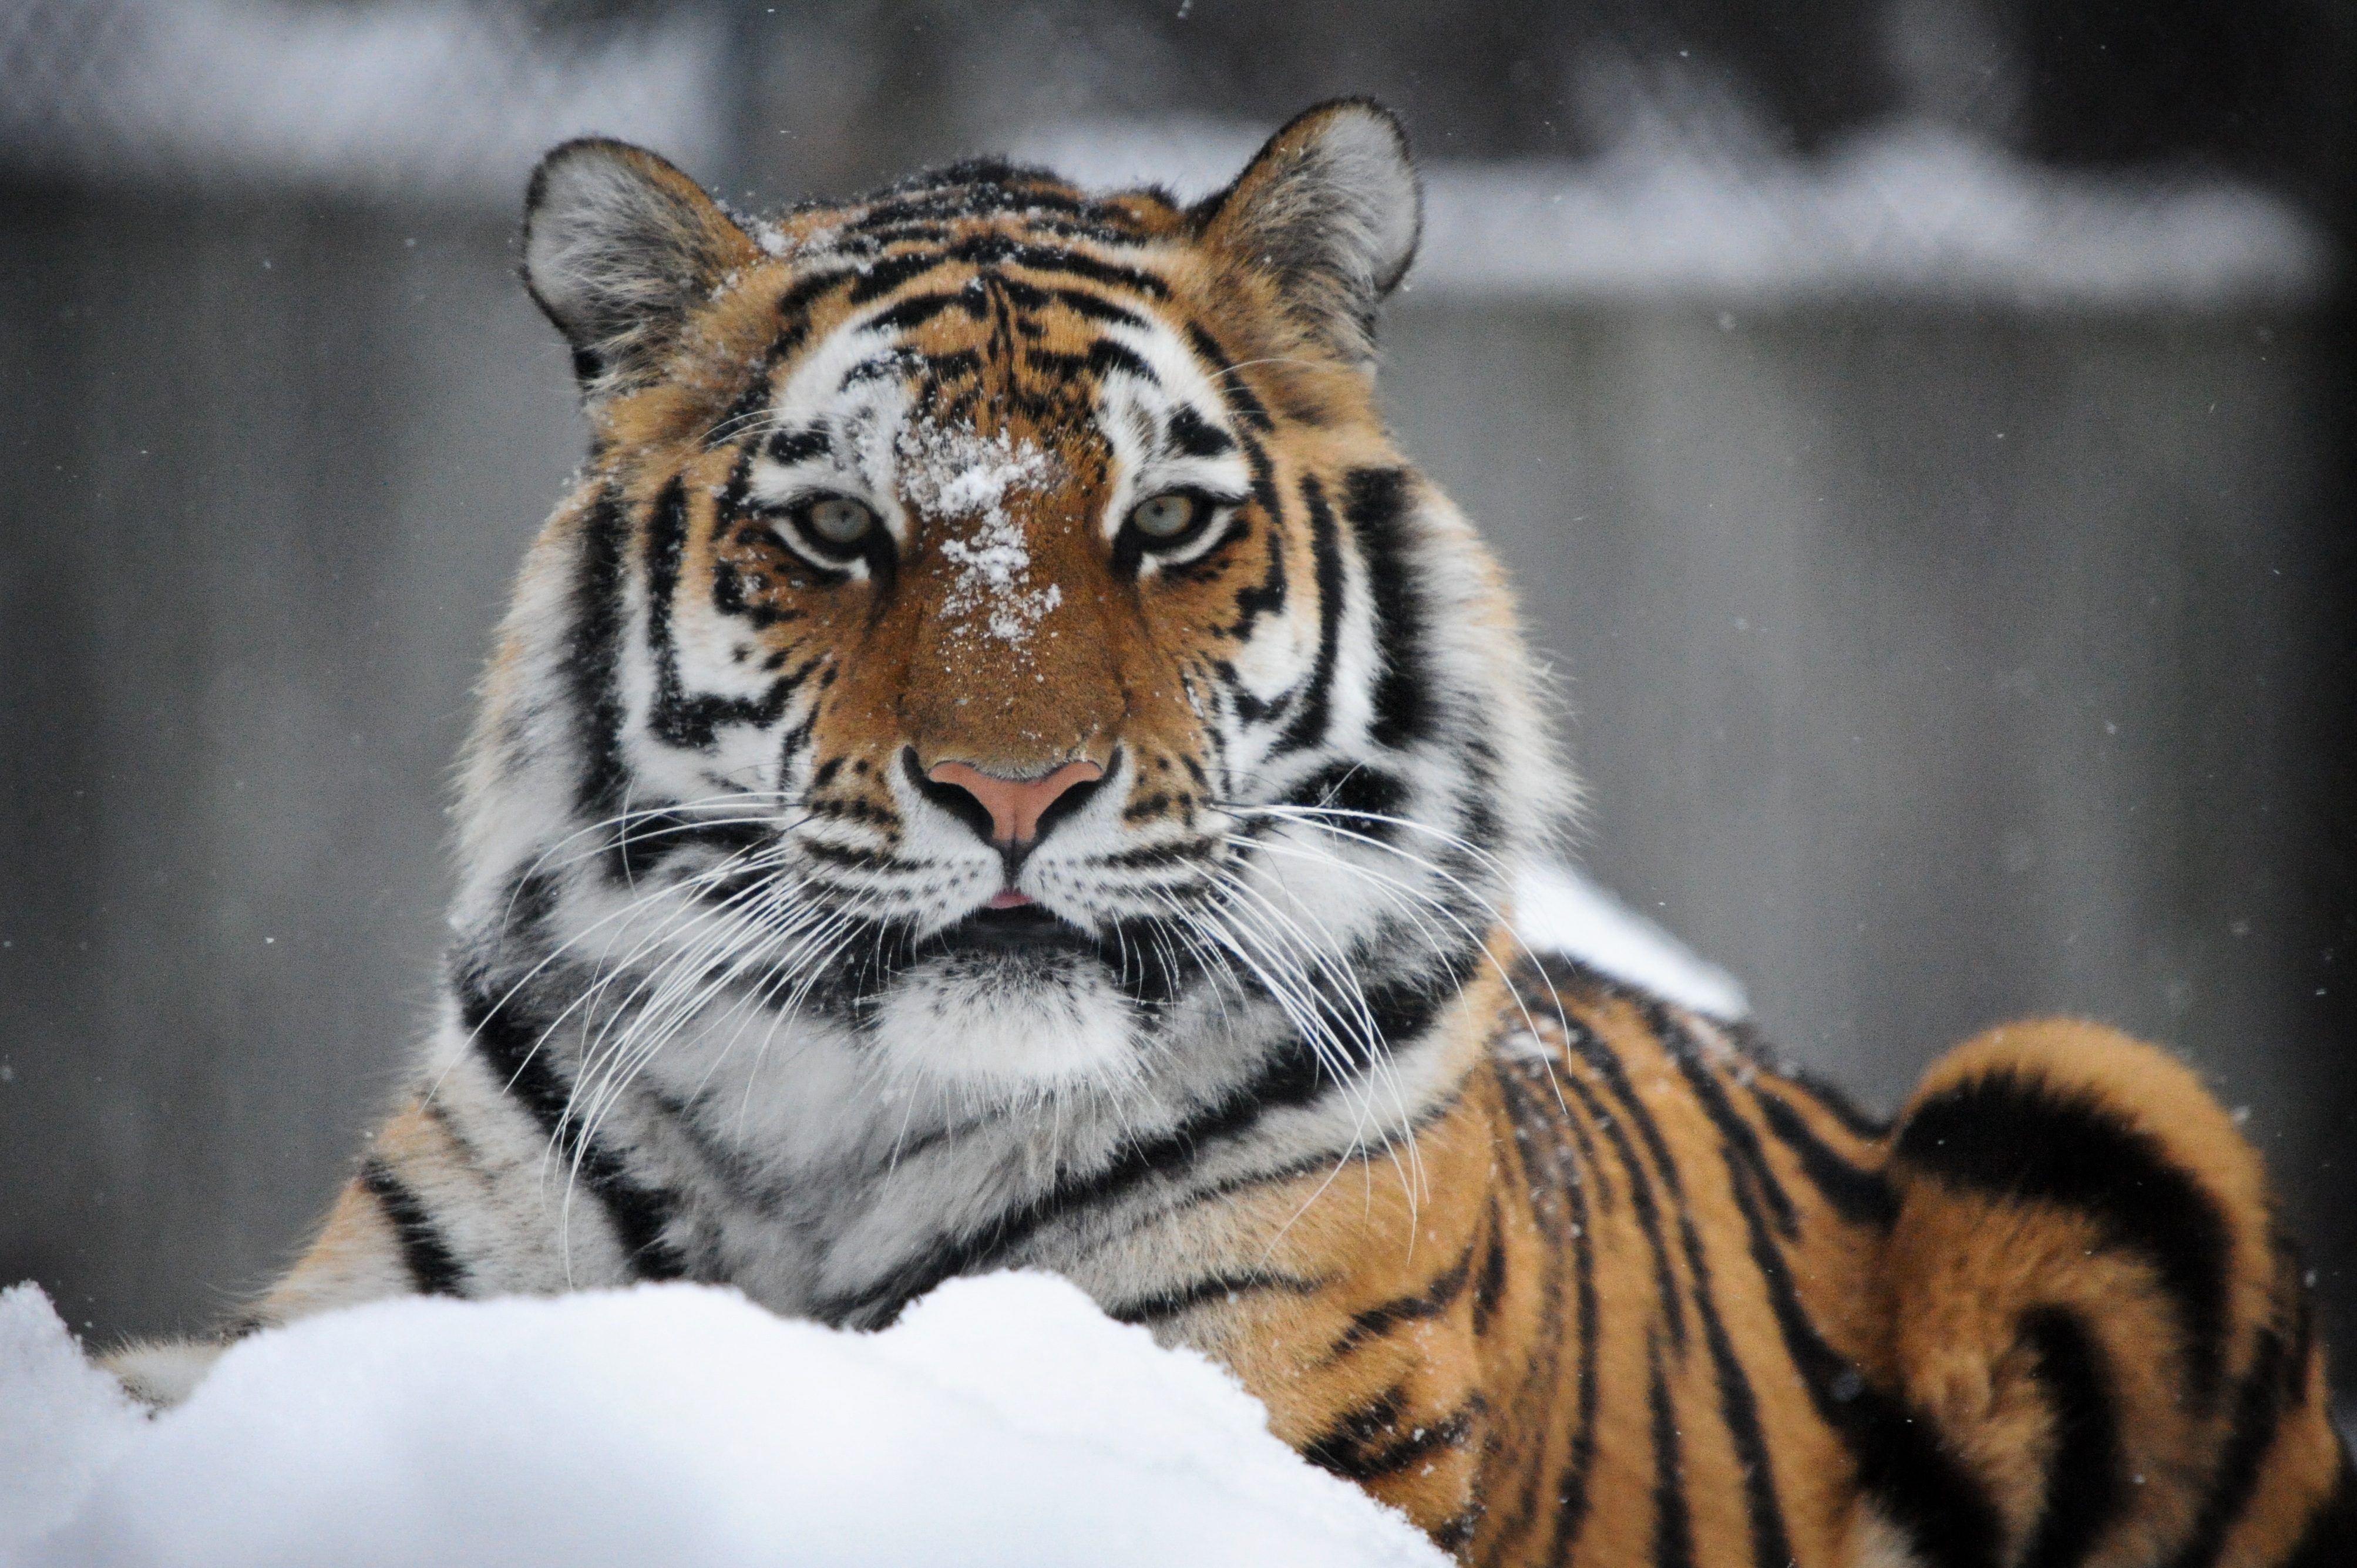 Tiger 4k ultra hd wallpaper and background image - Ultra hd animal wallpapers ...